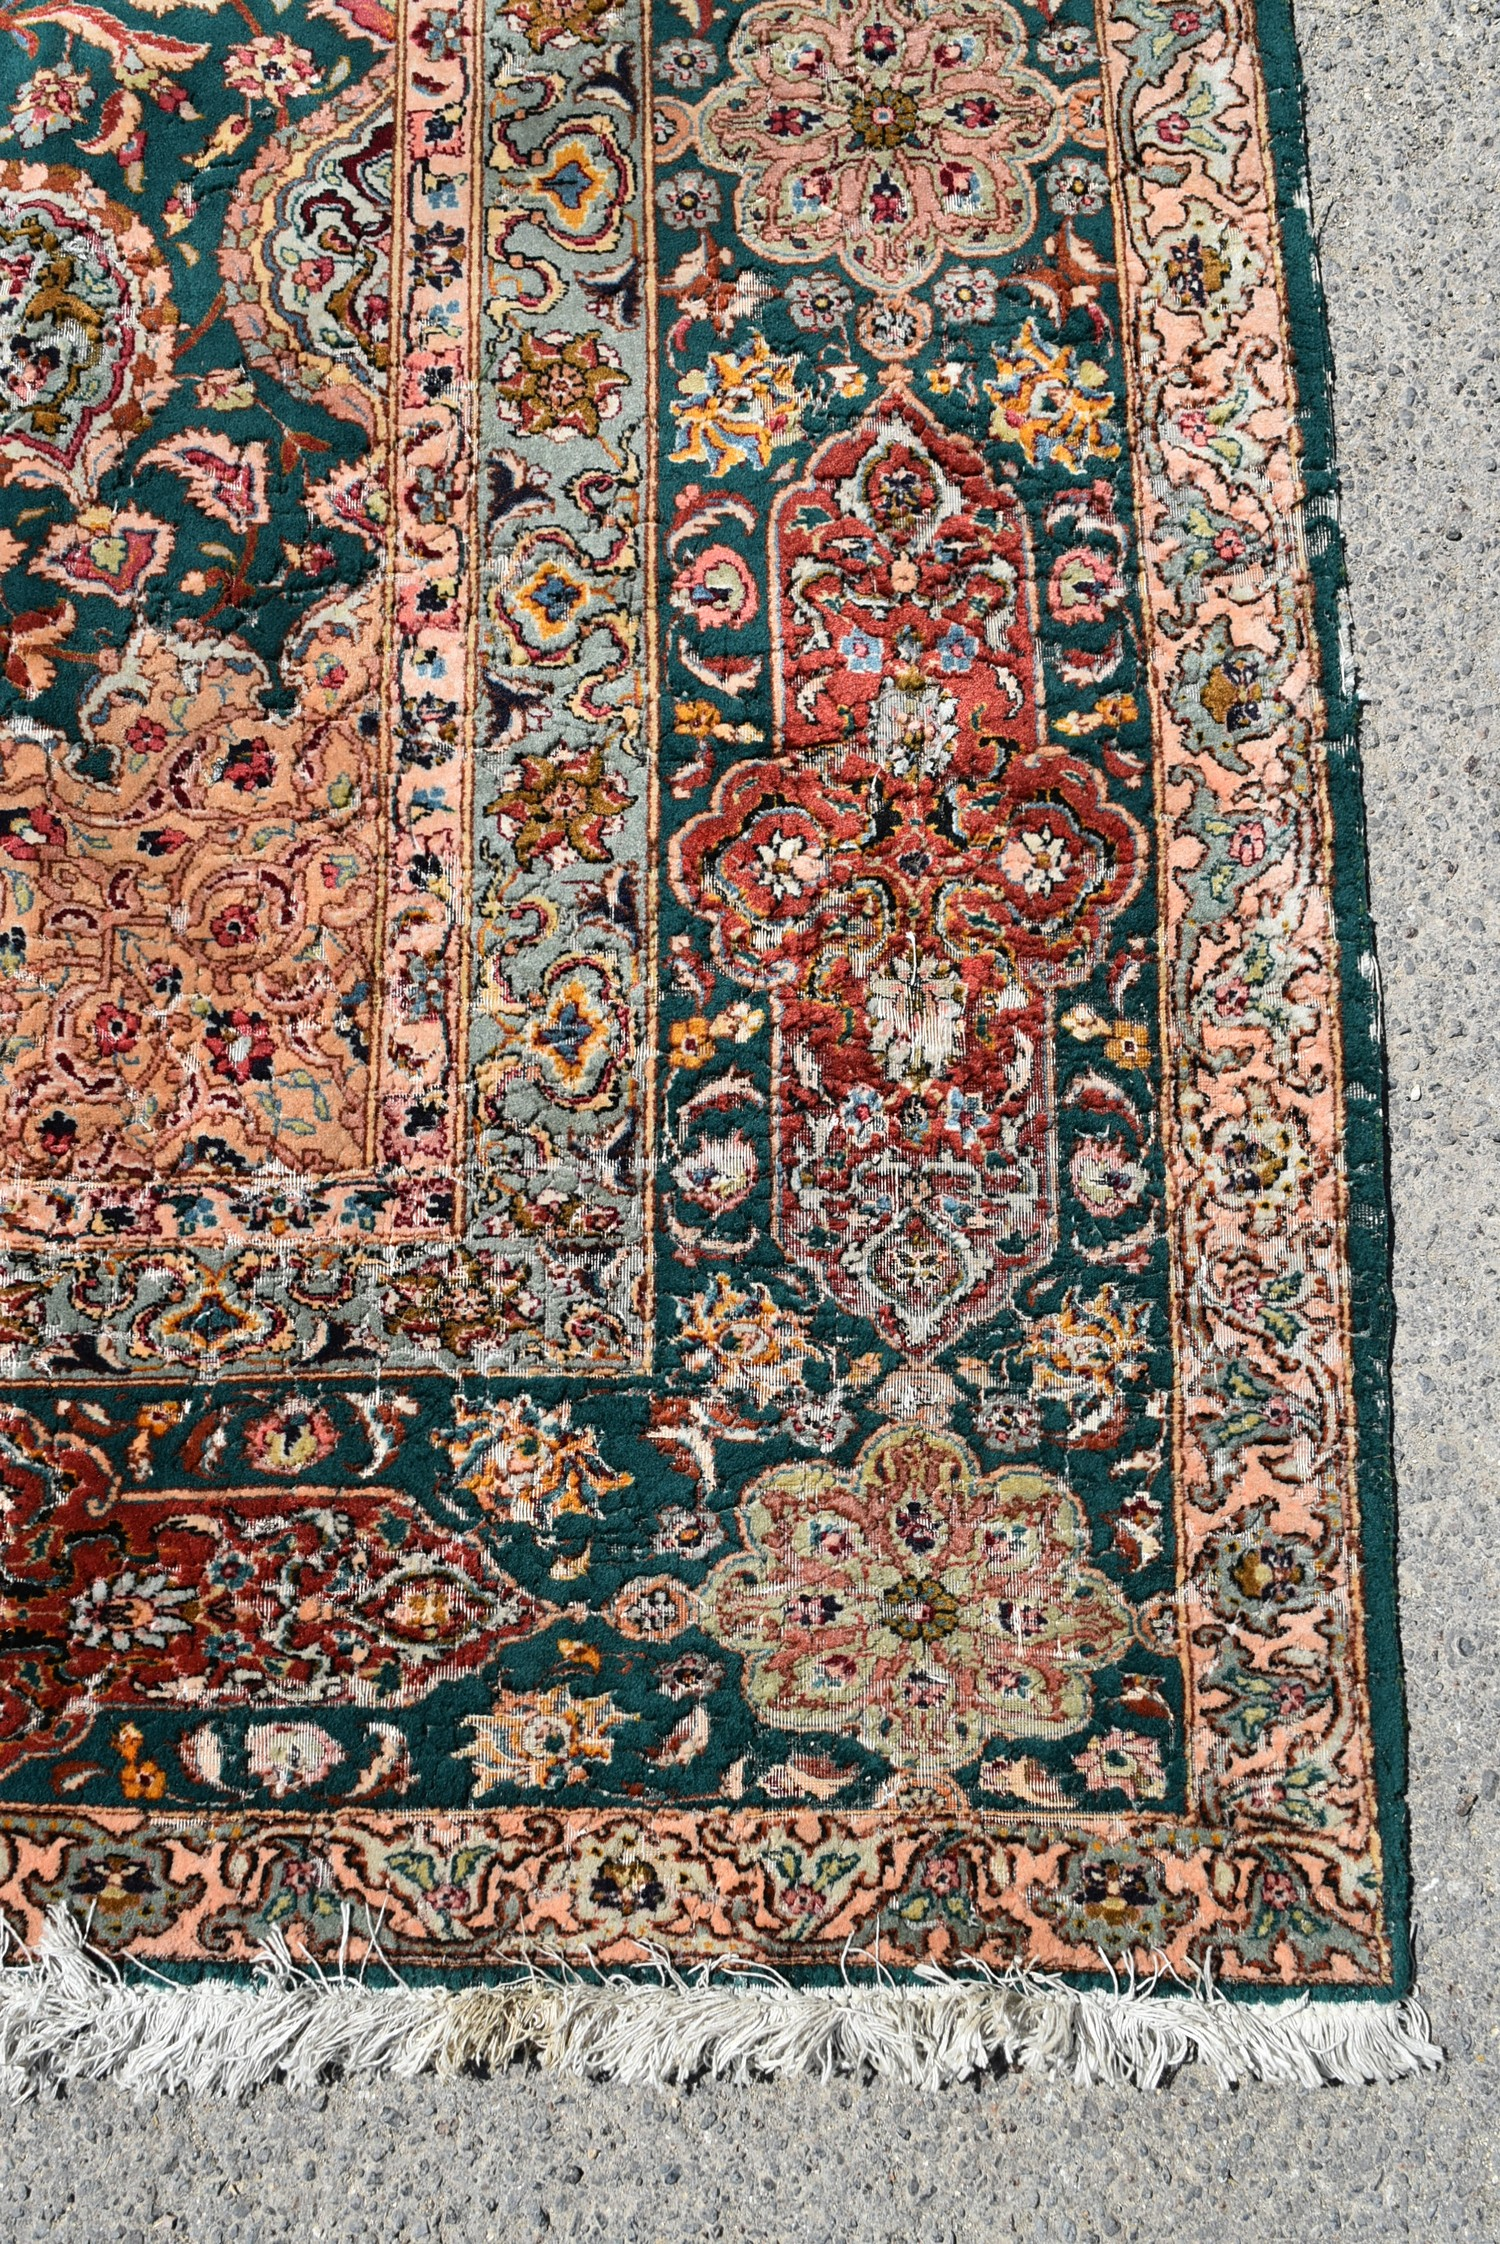 A fine Persian Tabriz carpet with central floral medallion and meandering flowerhead motifs across - Image 3 of 4